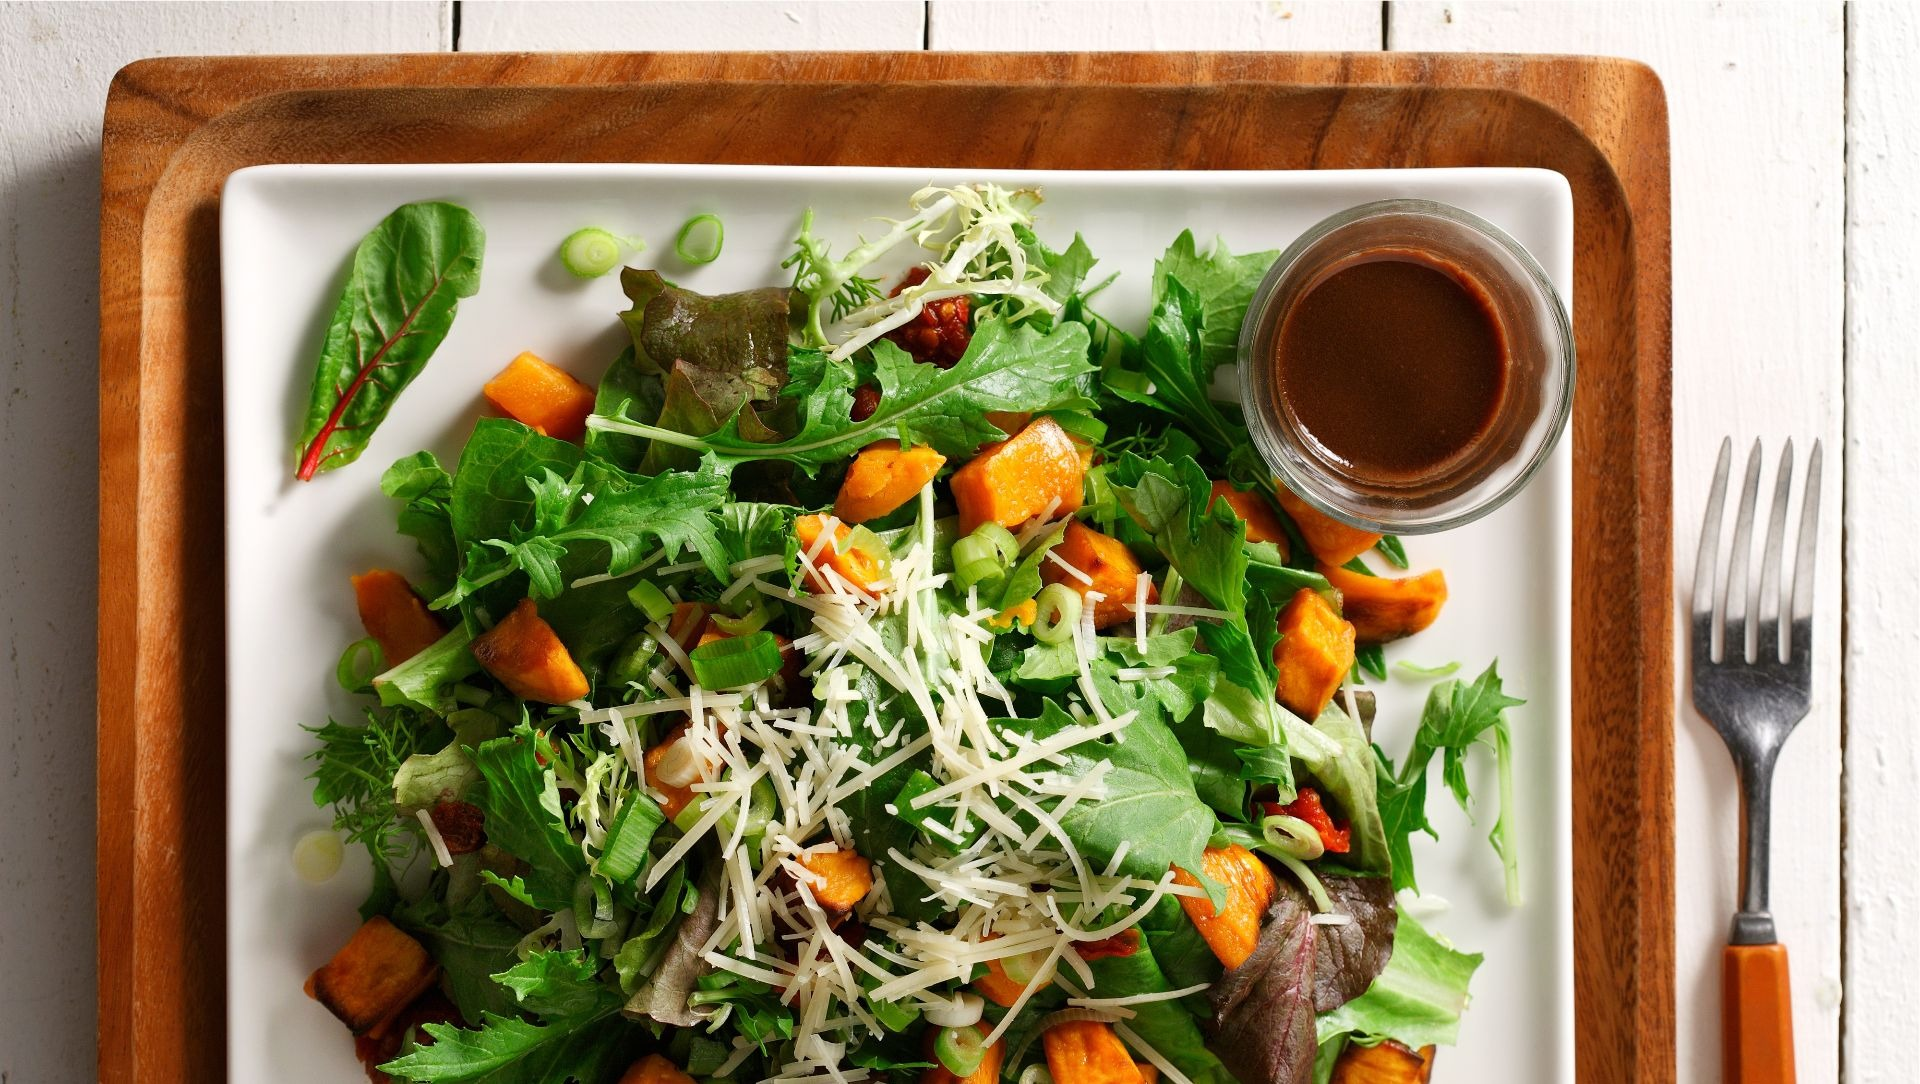 Warm sweet potato, sundried tomato and arugula salad on a white square plate.